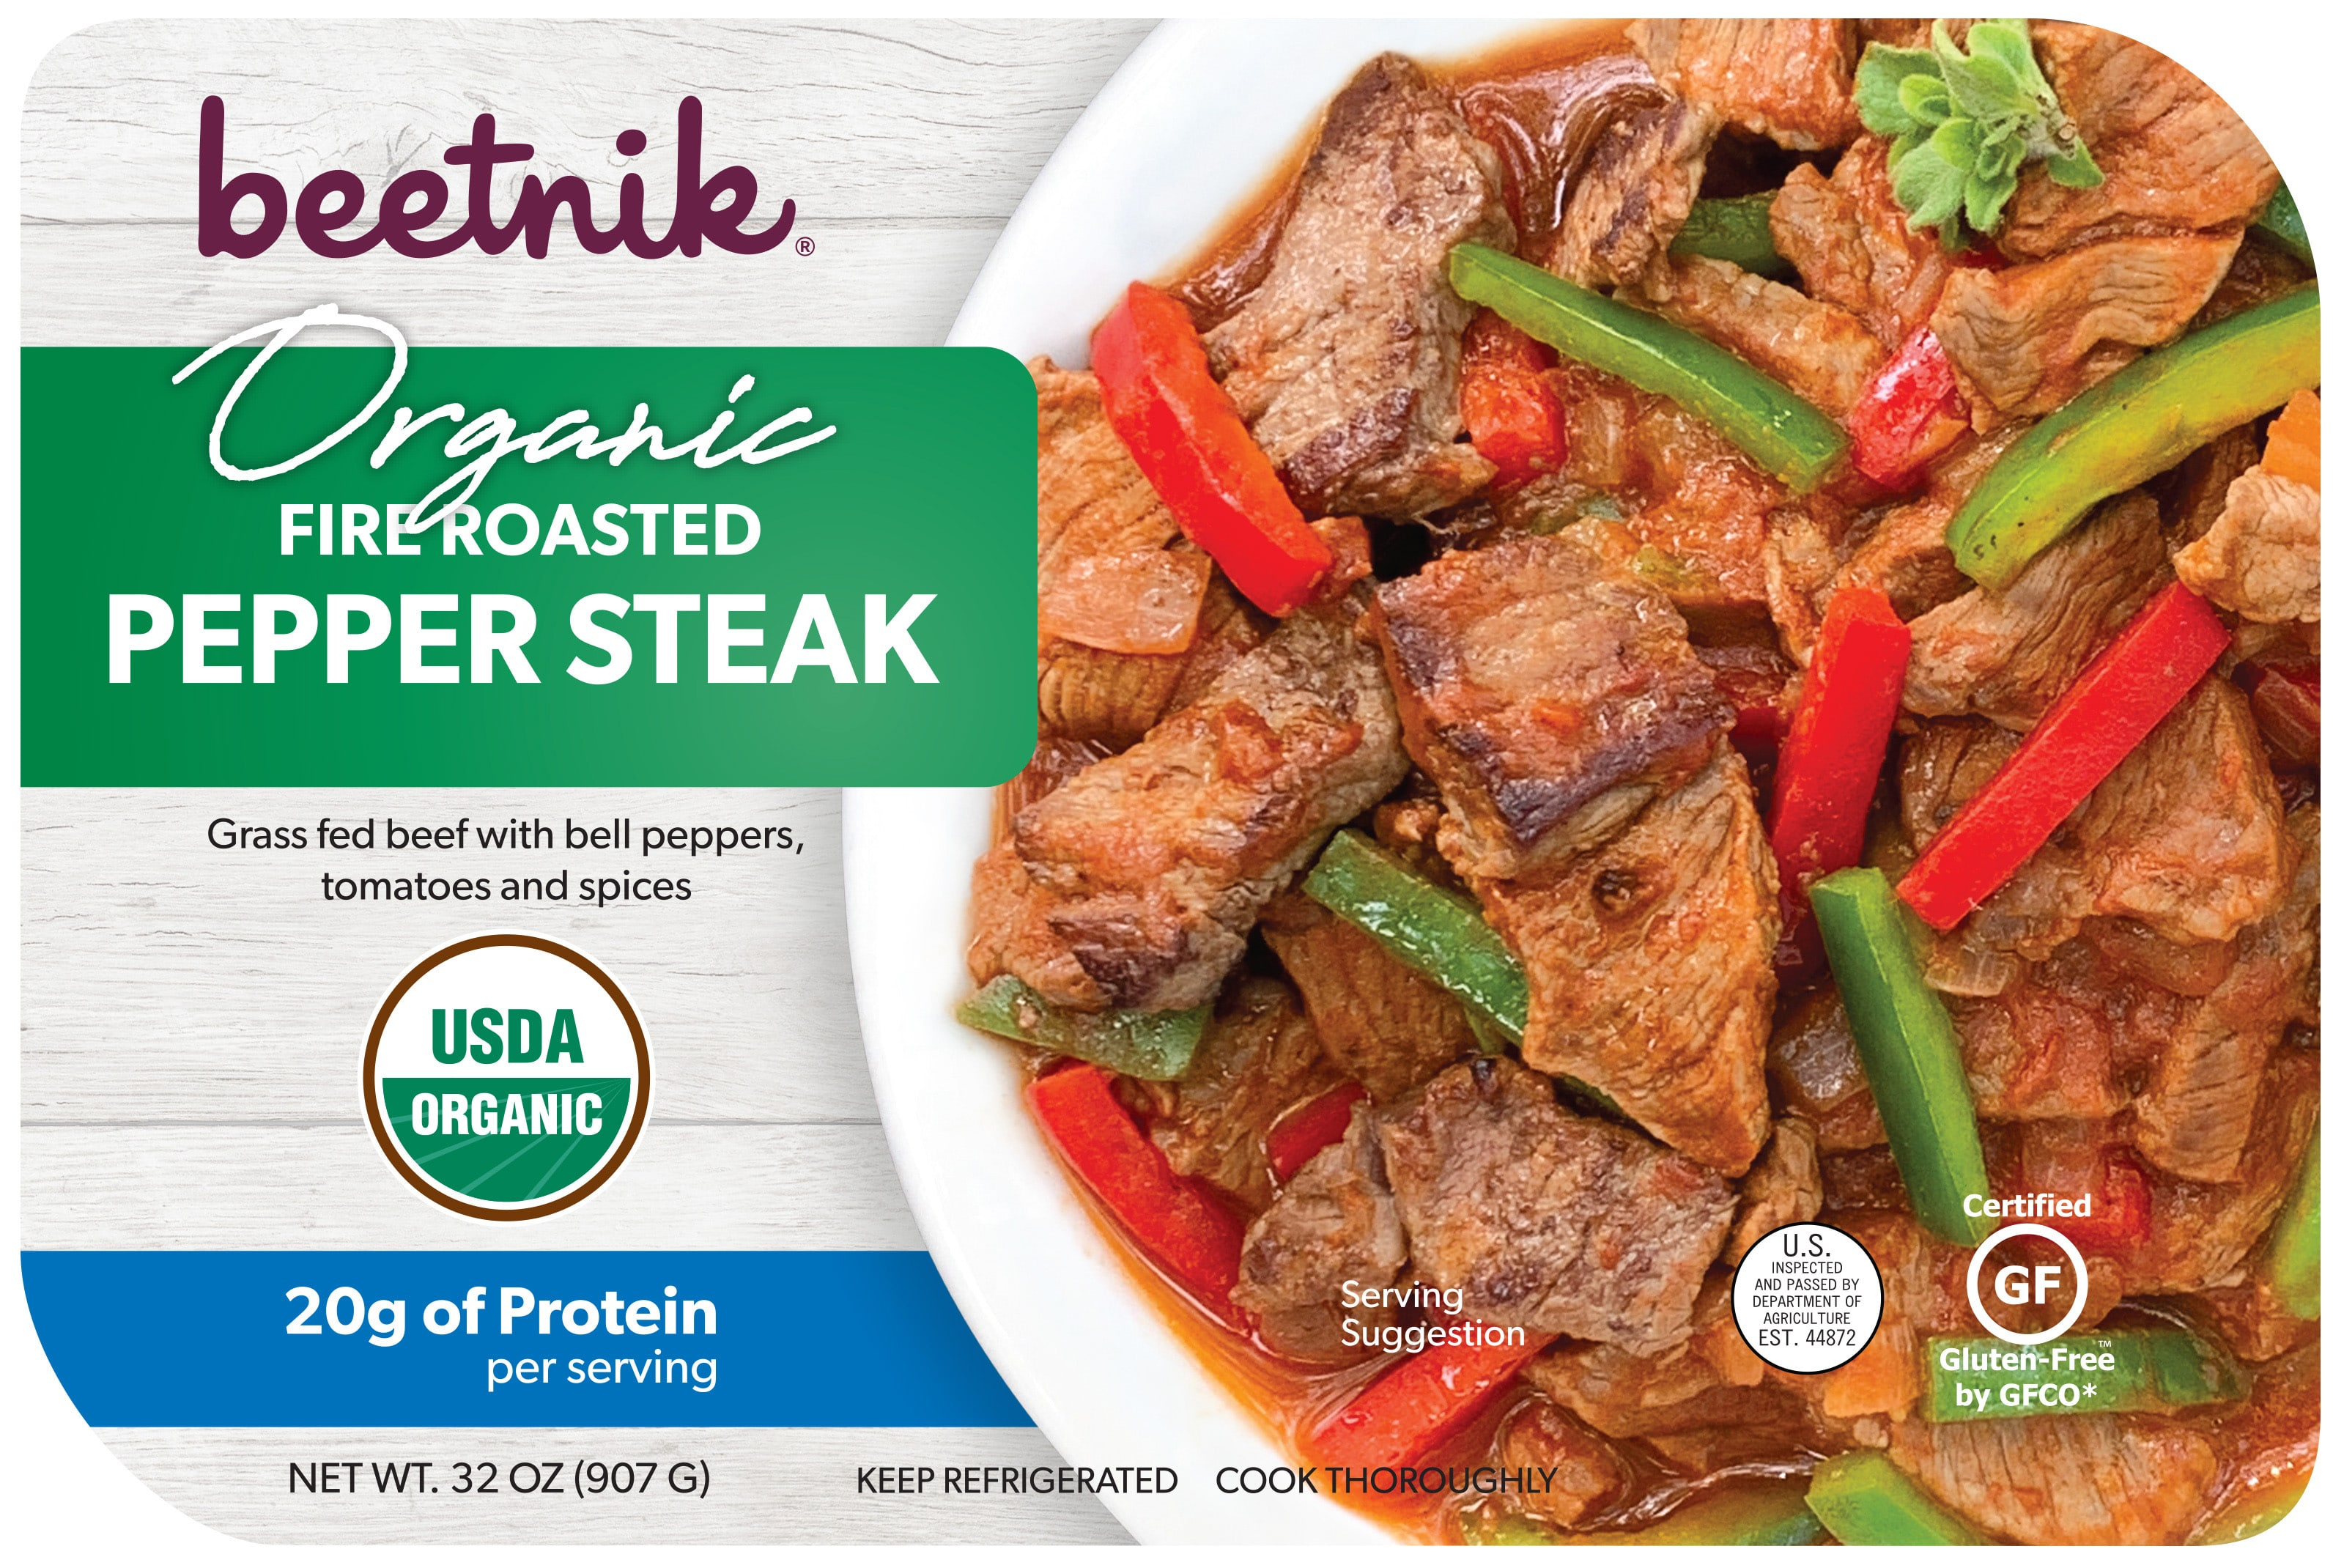 Beetnik Foods Introduces Refrigerated Entrée in Costco Southwest Stores